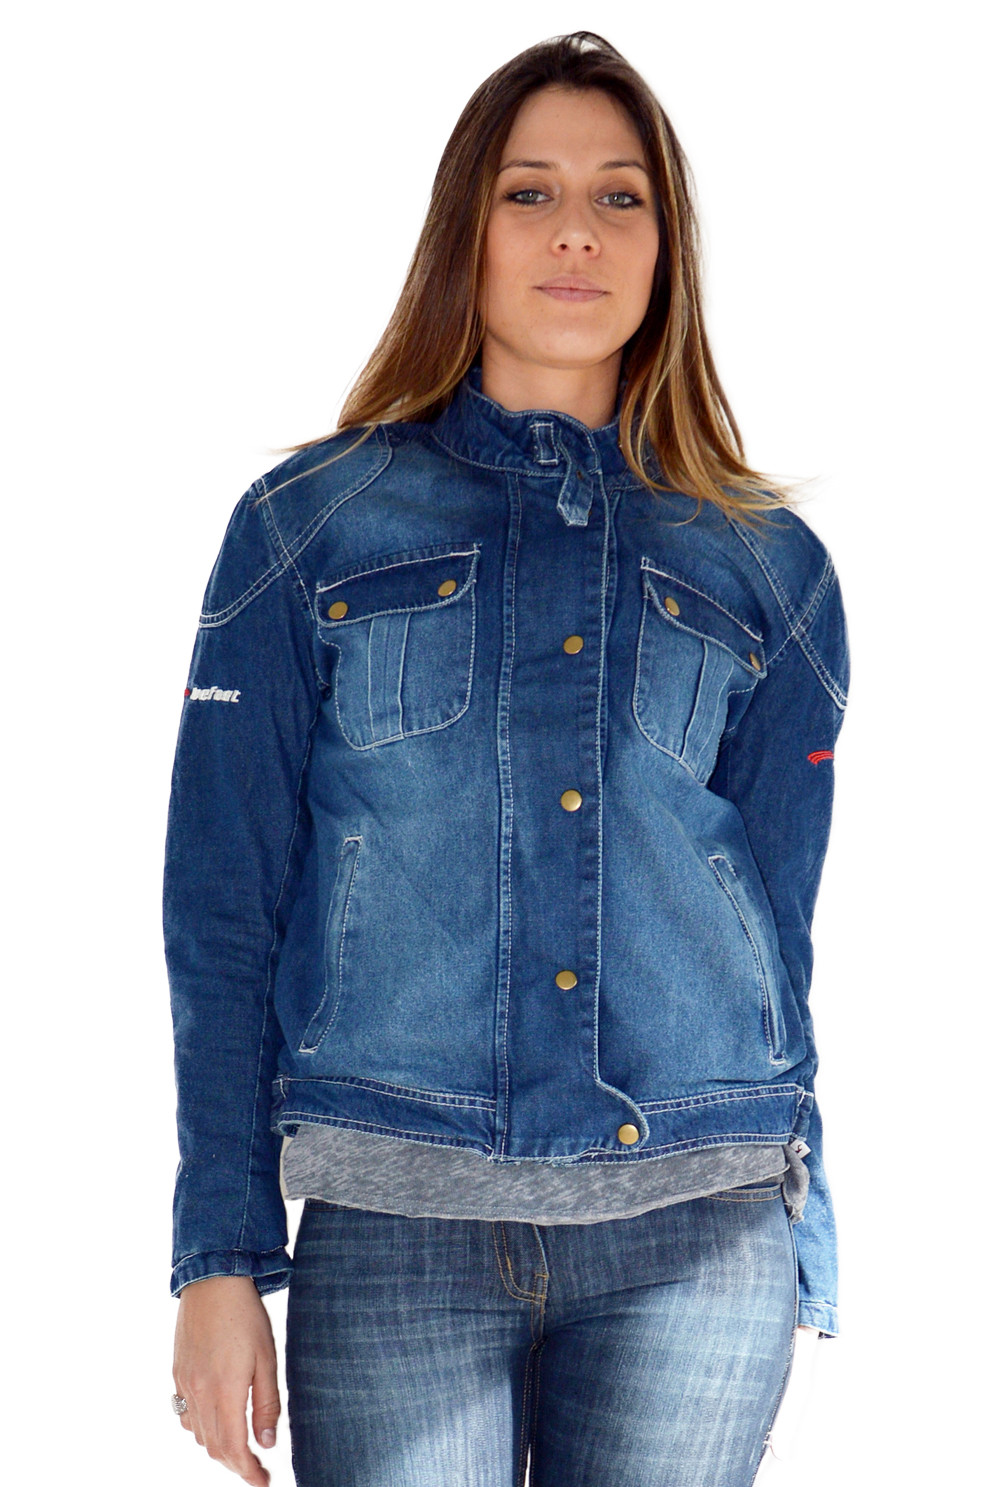 the best attitude 5cb6f a496e Giacca moto donna estiva jeans Befast James Lady